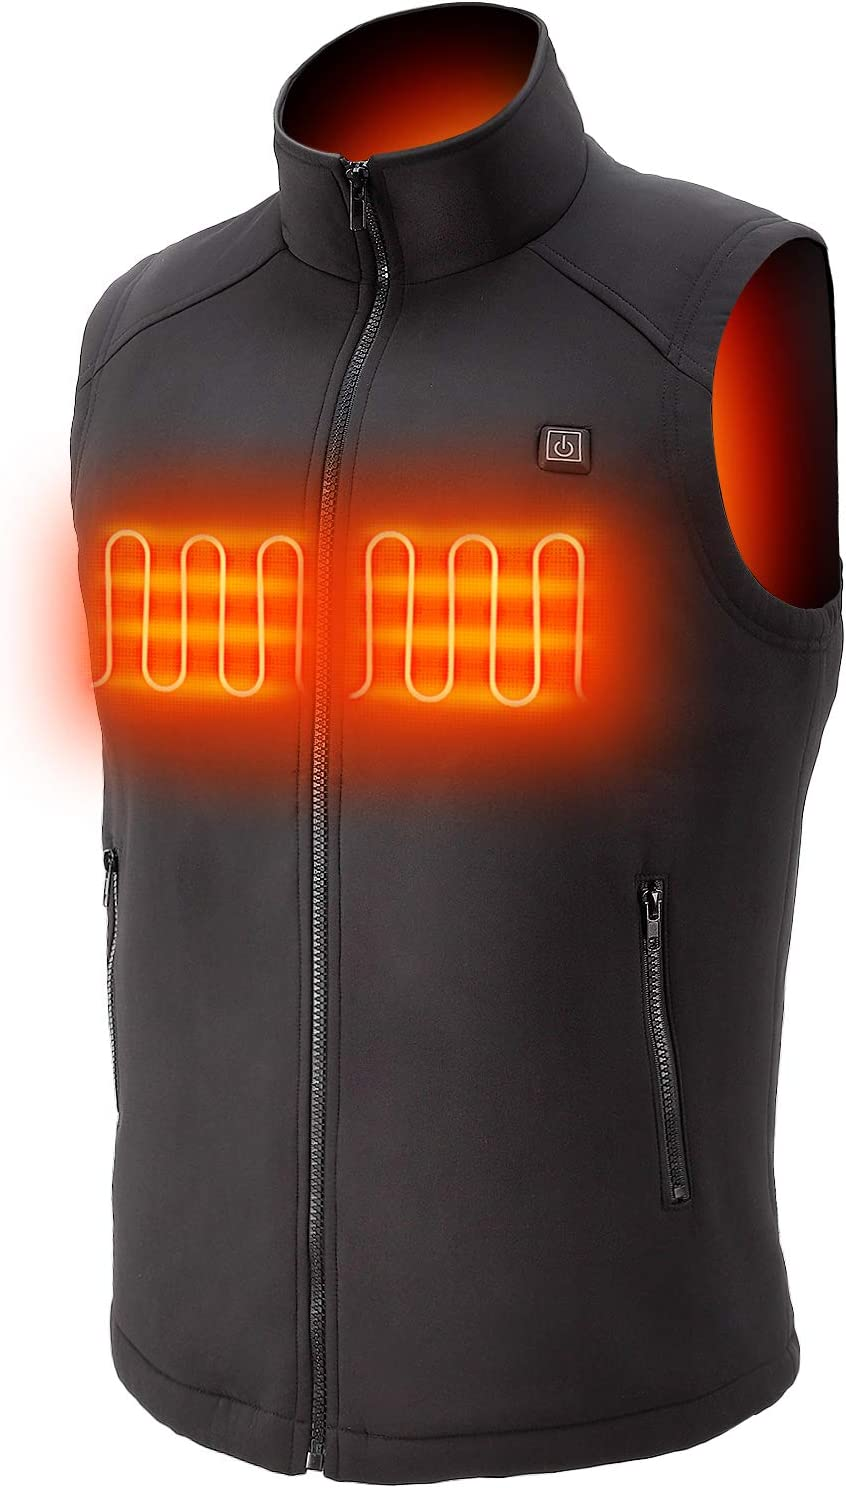 Sunbond Heating Electric Vest Heated Jacket Cold-Proof Heating Clothes Washable Four Sizes Adjustment (M) Black (L)